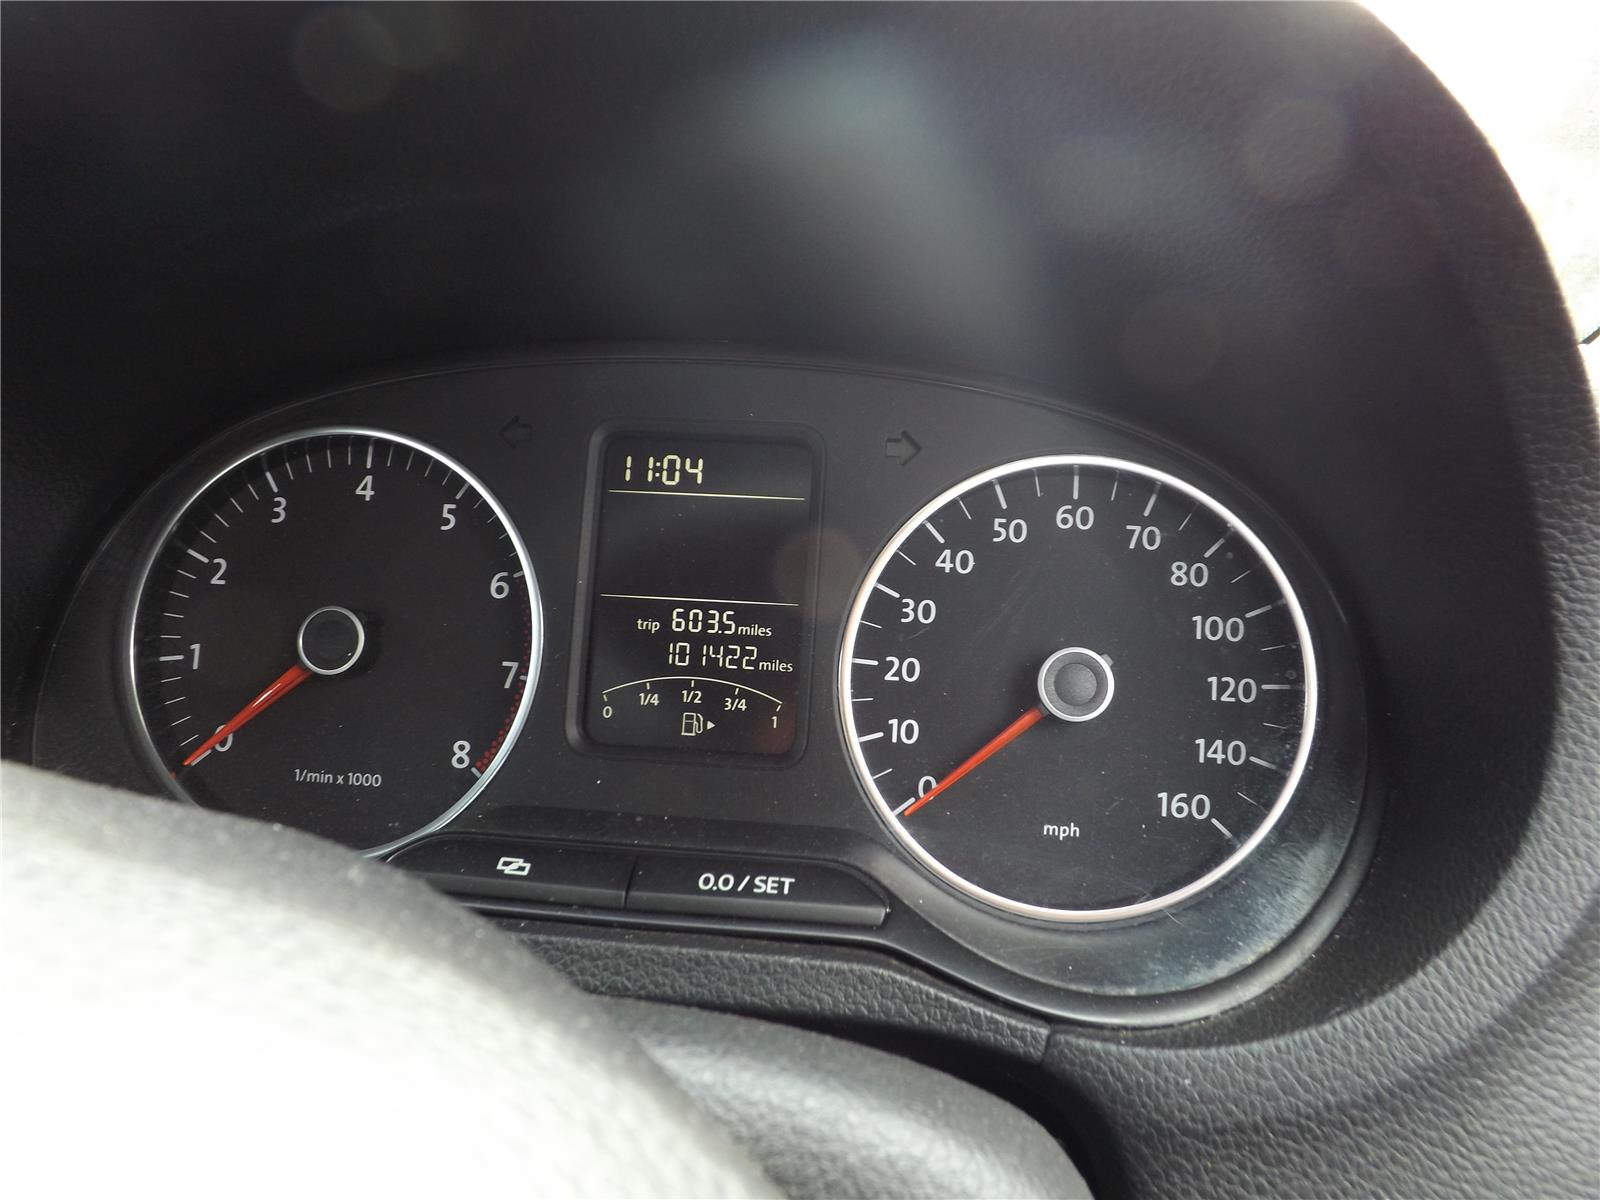 Volkswagen Polo 2010 To 2014 Instrument Cluster (Petrol / Manual